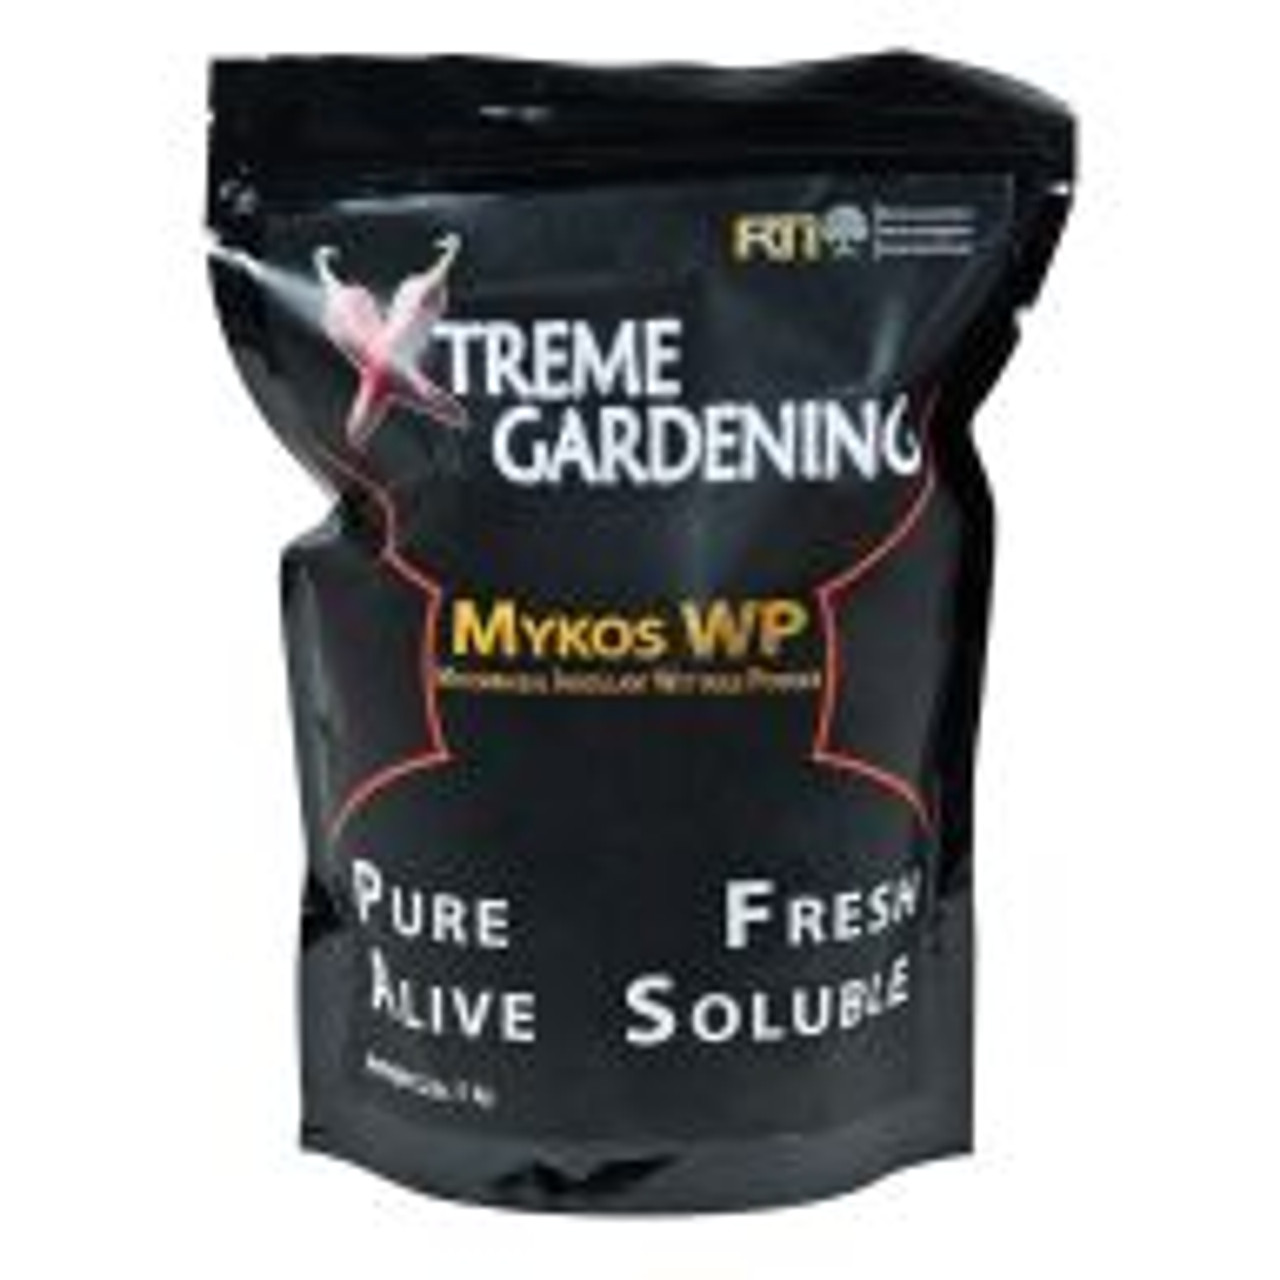 Mykos WP (wettable powder) is a versatile, highly effective milled version of Mykos that rapidly inoculates plants. Mykos WP can be applied as a supplemental source of mycorrhizae to plants that have been inoculated with Mykos but have since been treated with multiple applications of conventional chemical fertilizers.